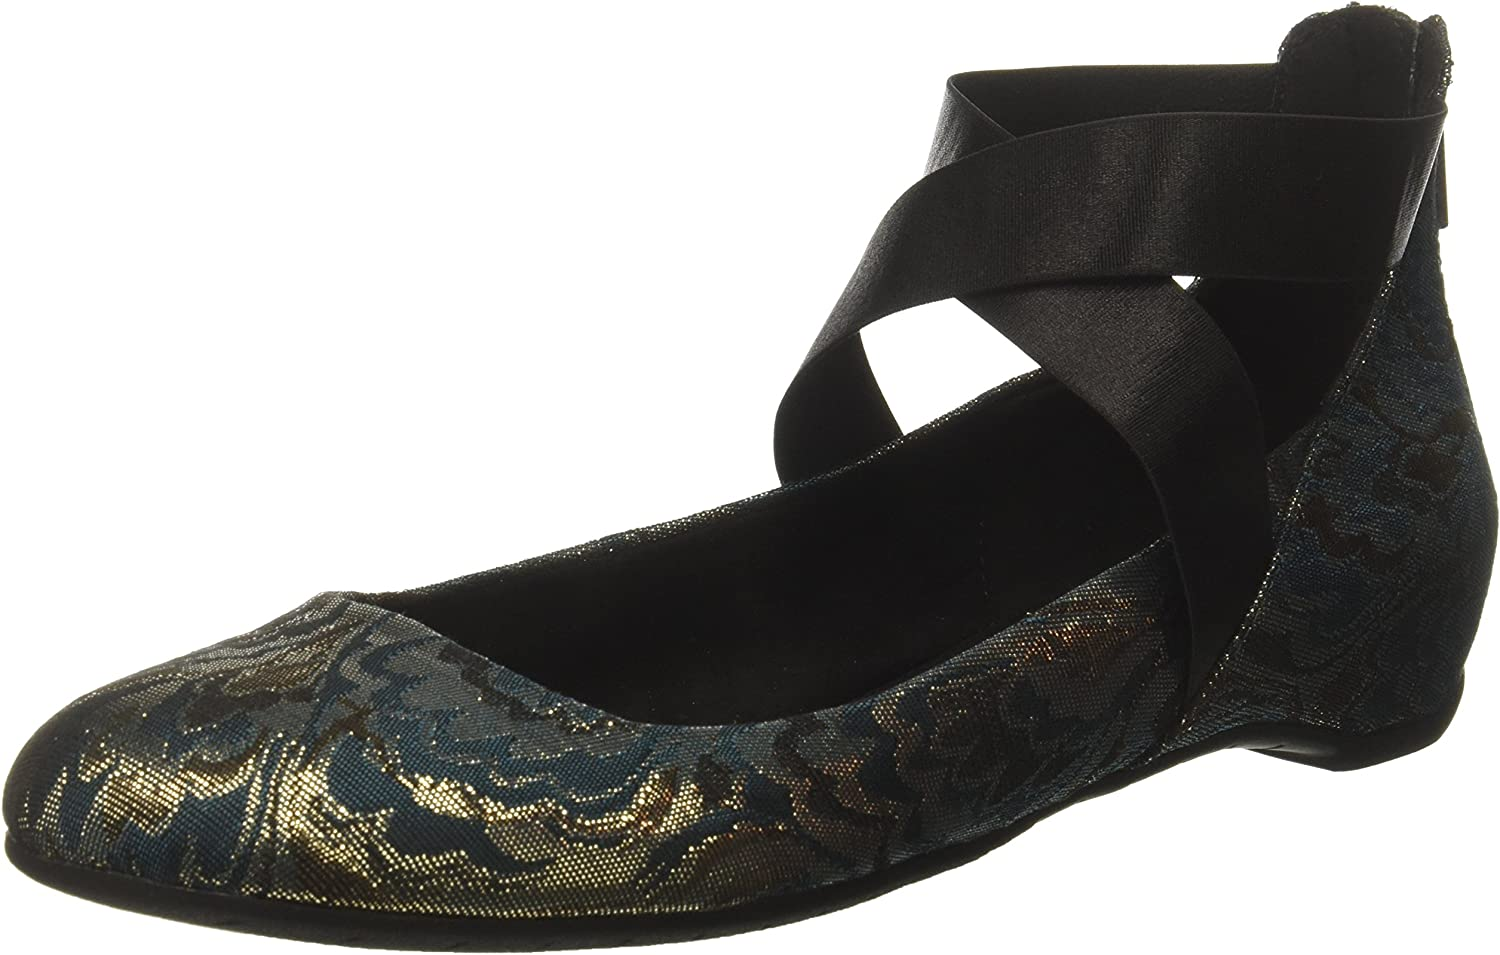 Kenneth Cole REACTION Women's PRO-TIME Ballet Flats